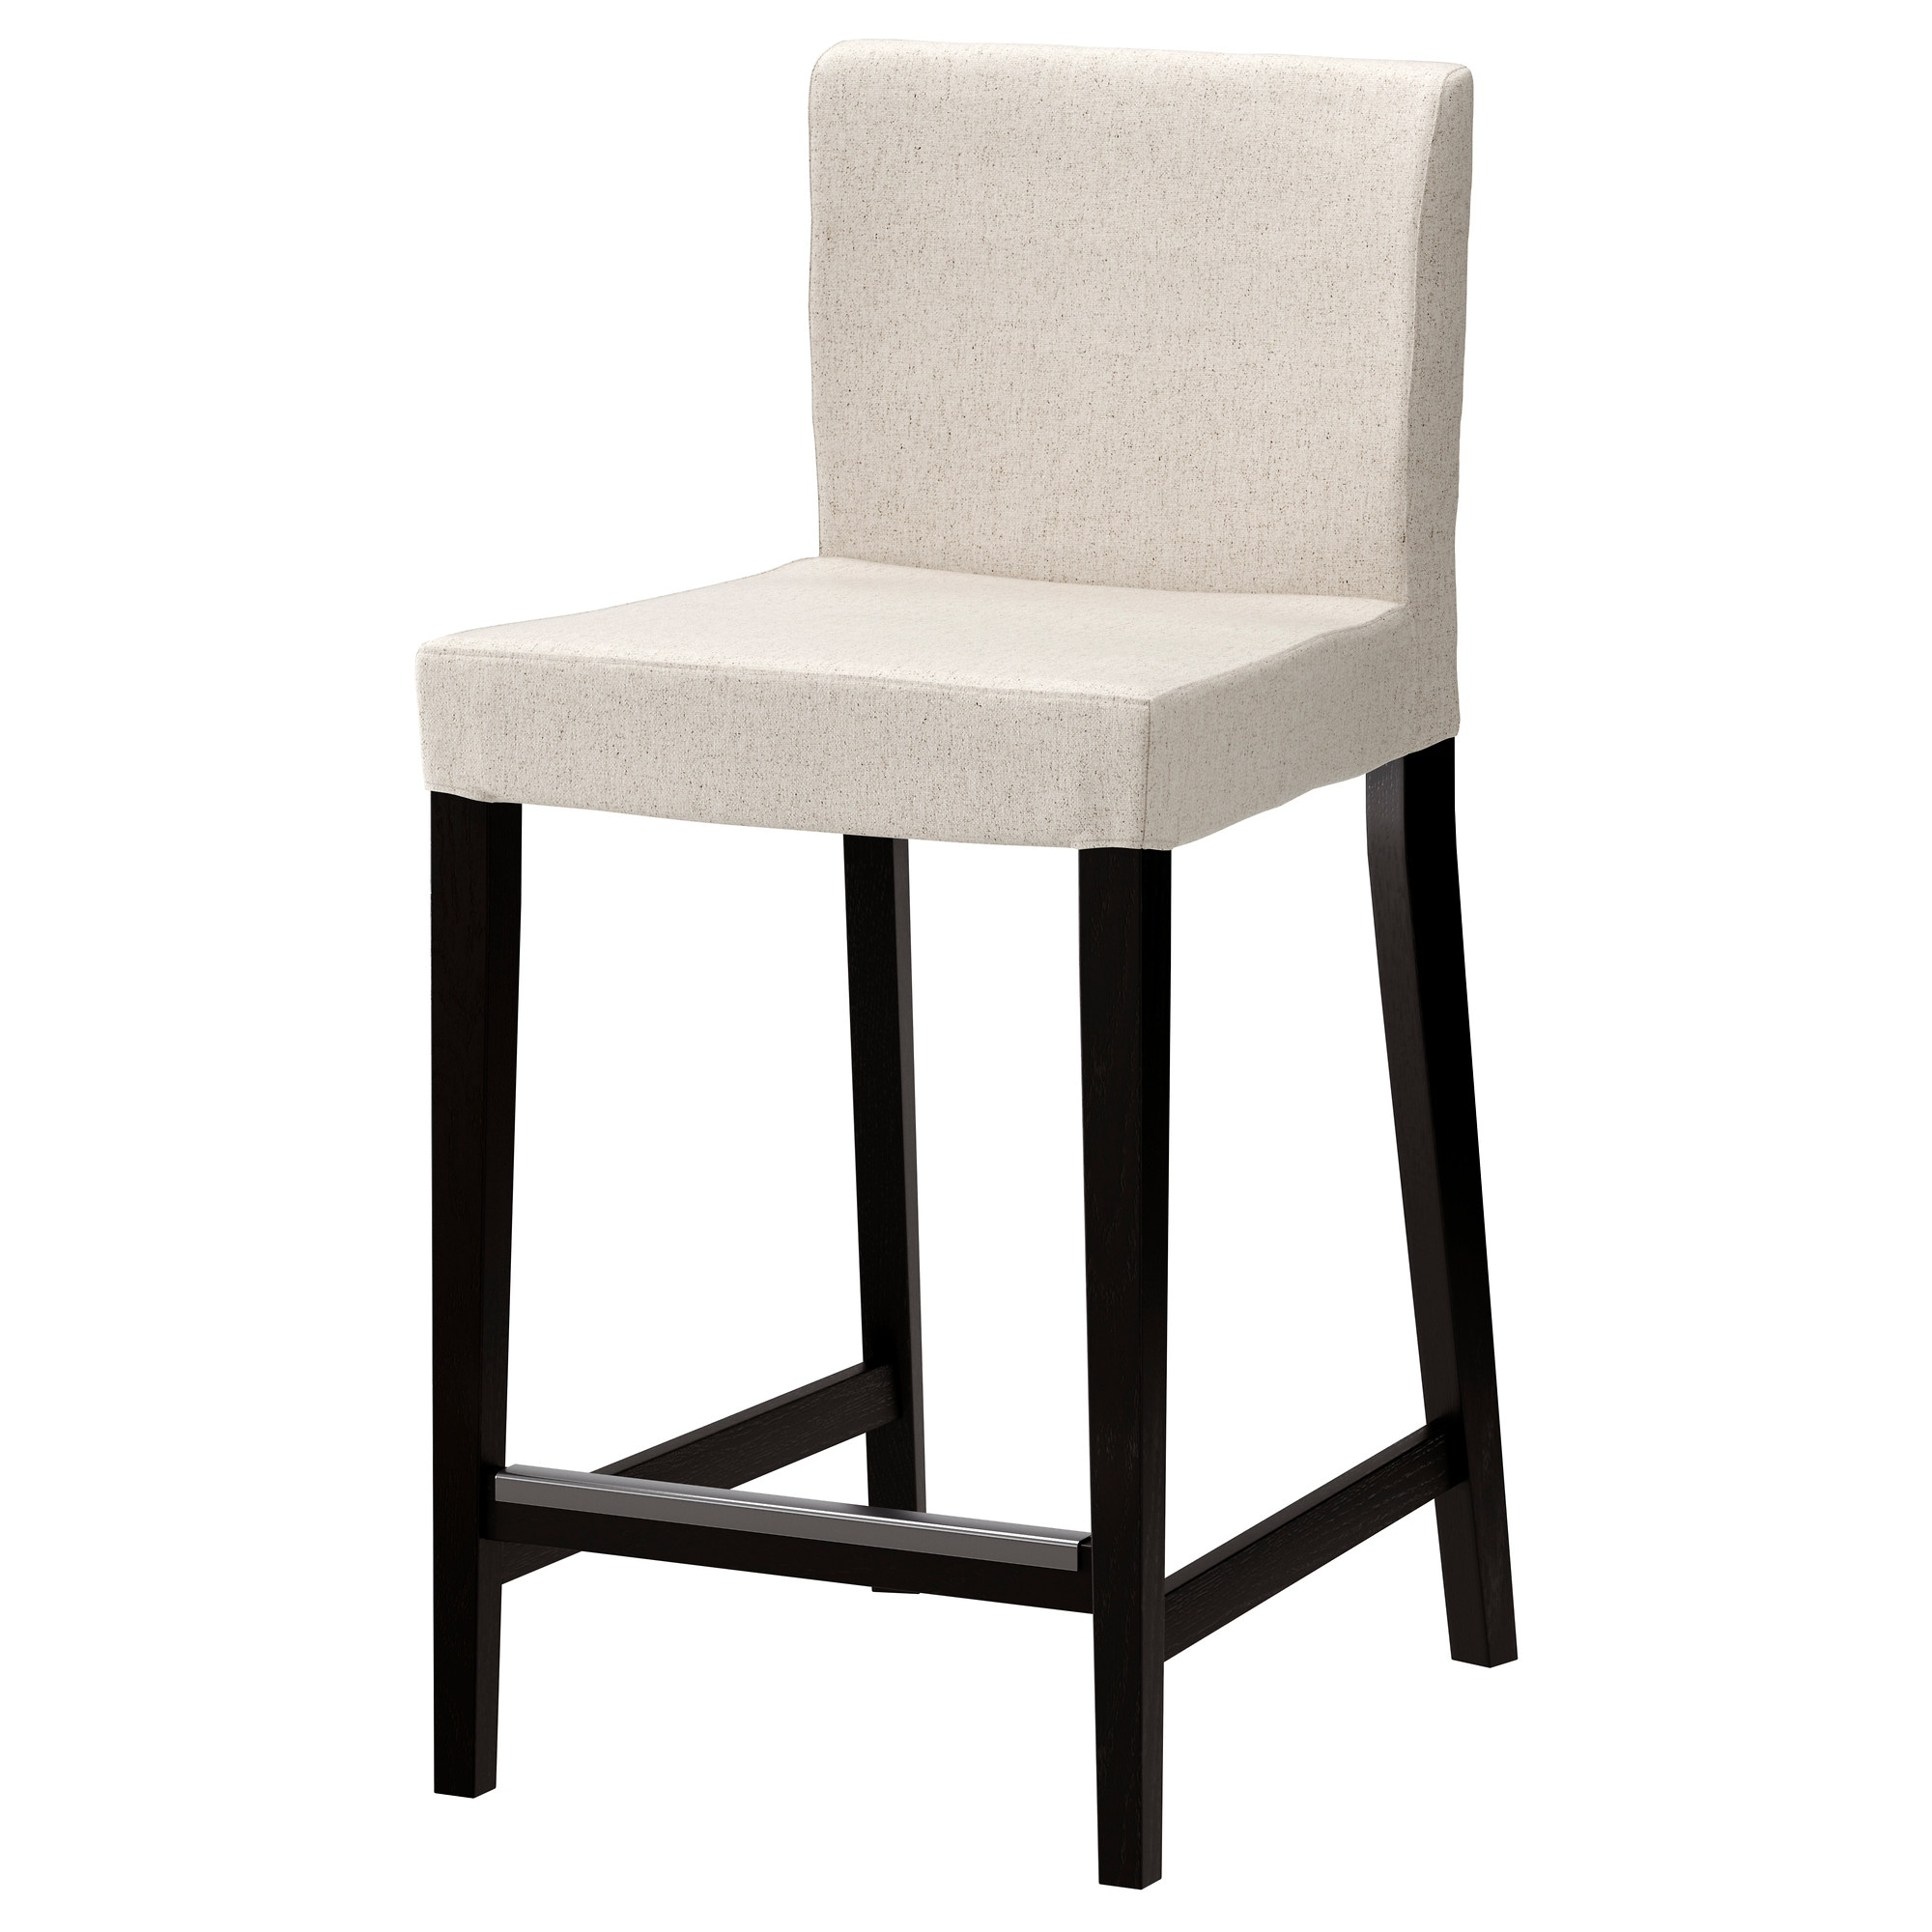 Stool Chair Henriksdal Bar Stool With Backrest Brown Black Linneryd Natural